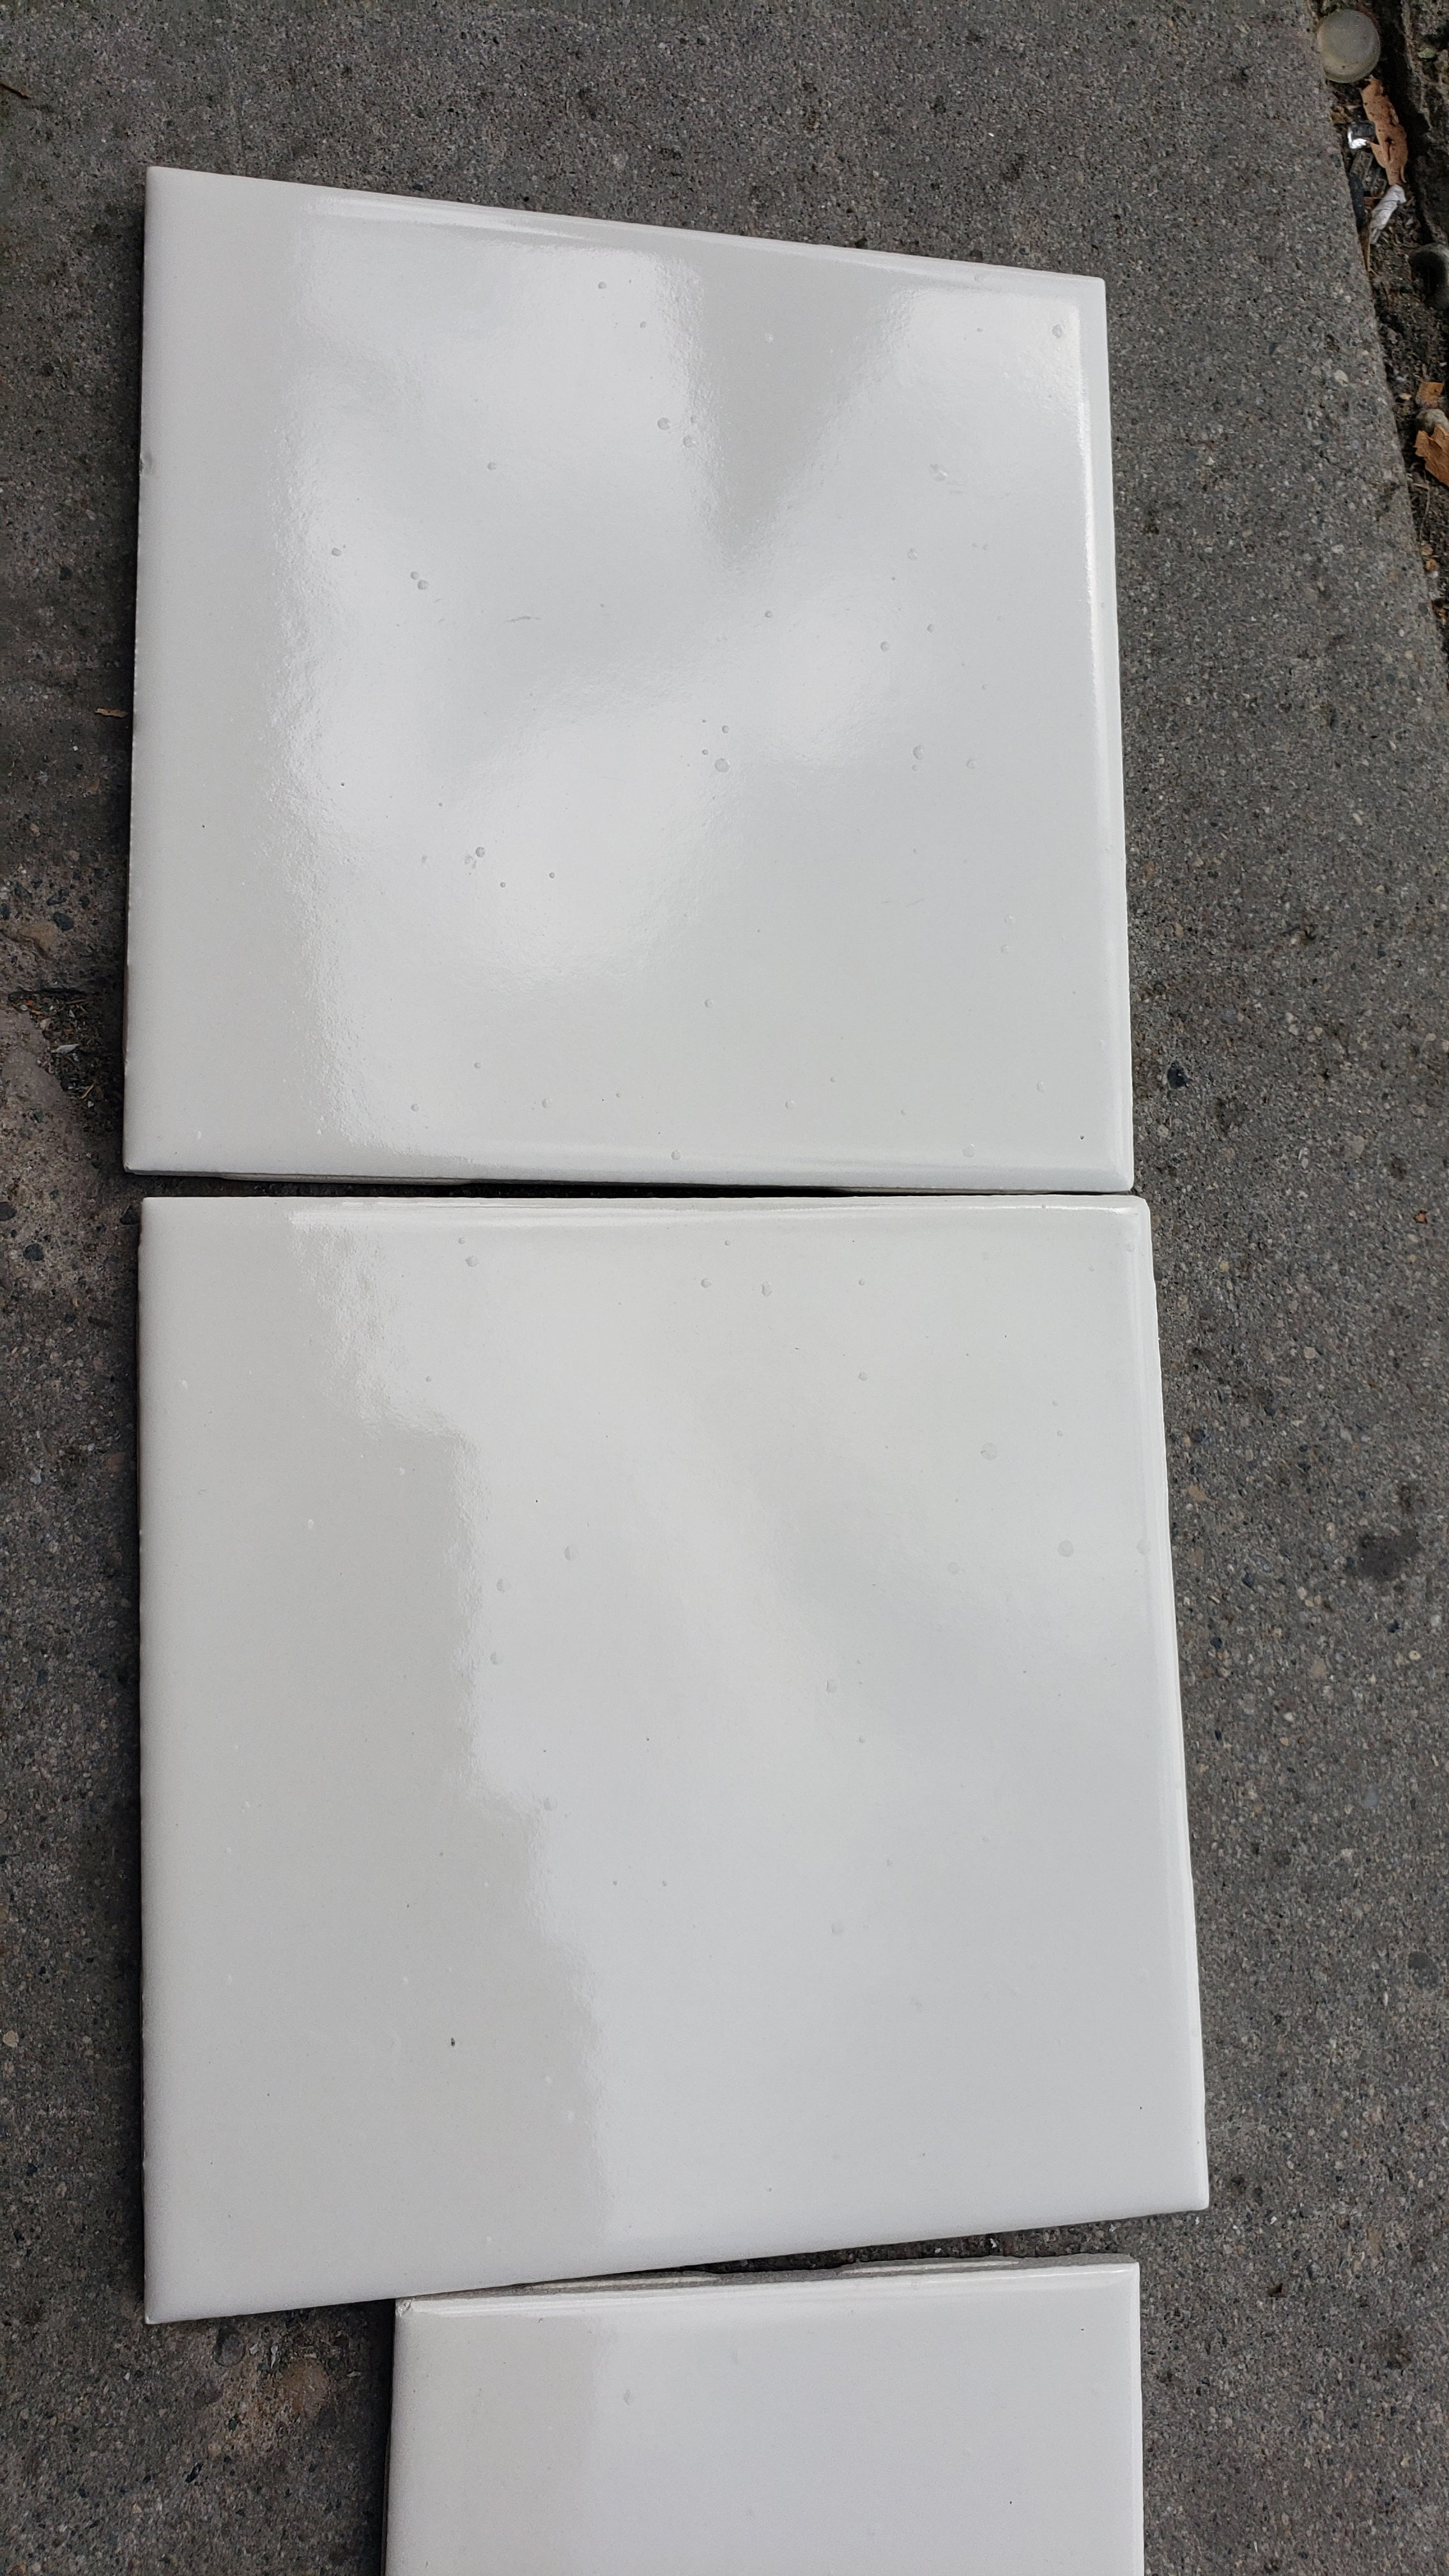 "Wall Tile 4"" x 4"" Biscuit Gloss Ceramic (10 sq ft in a box) 86 boxes available - Macomb County ReStores"